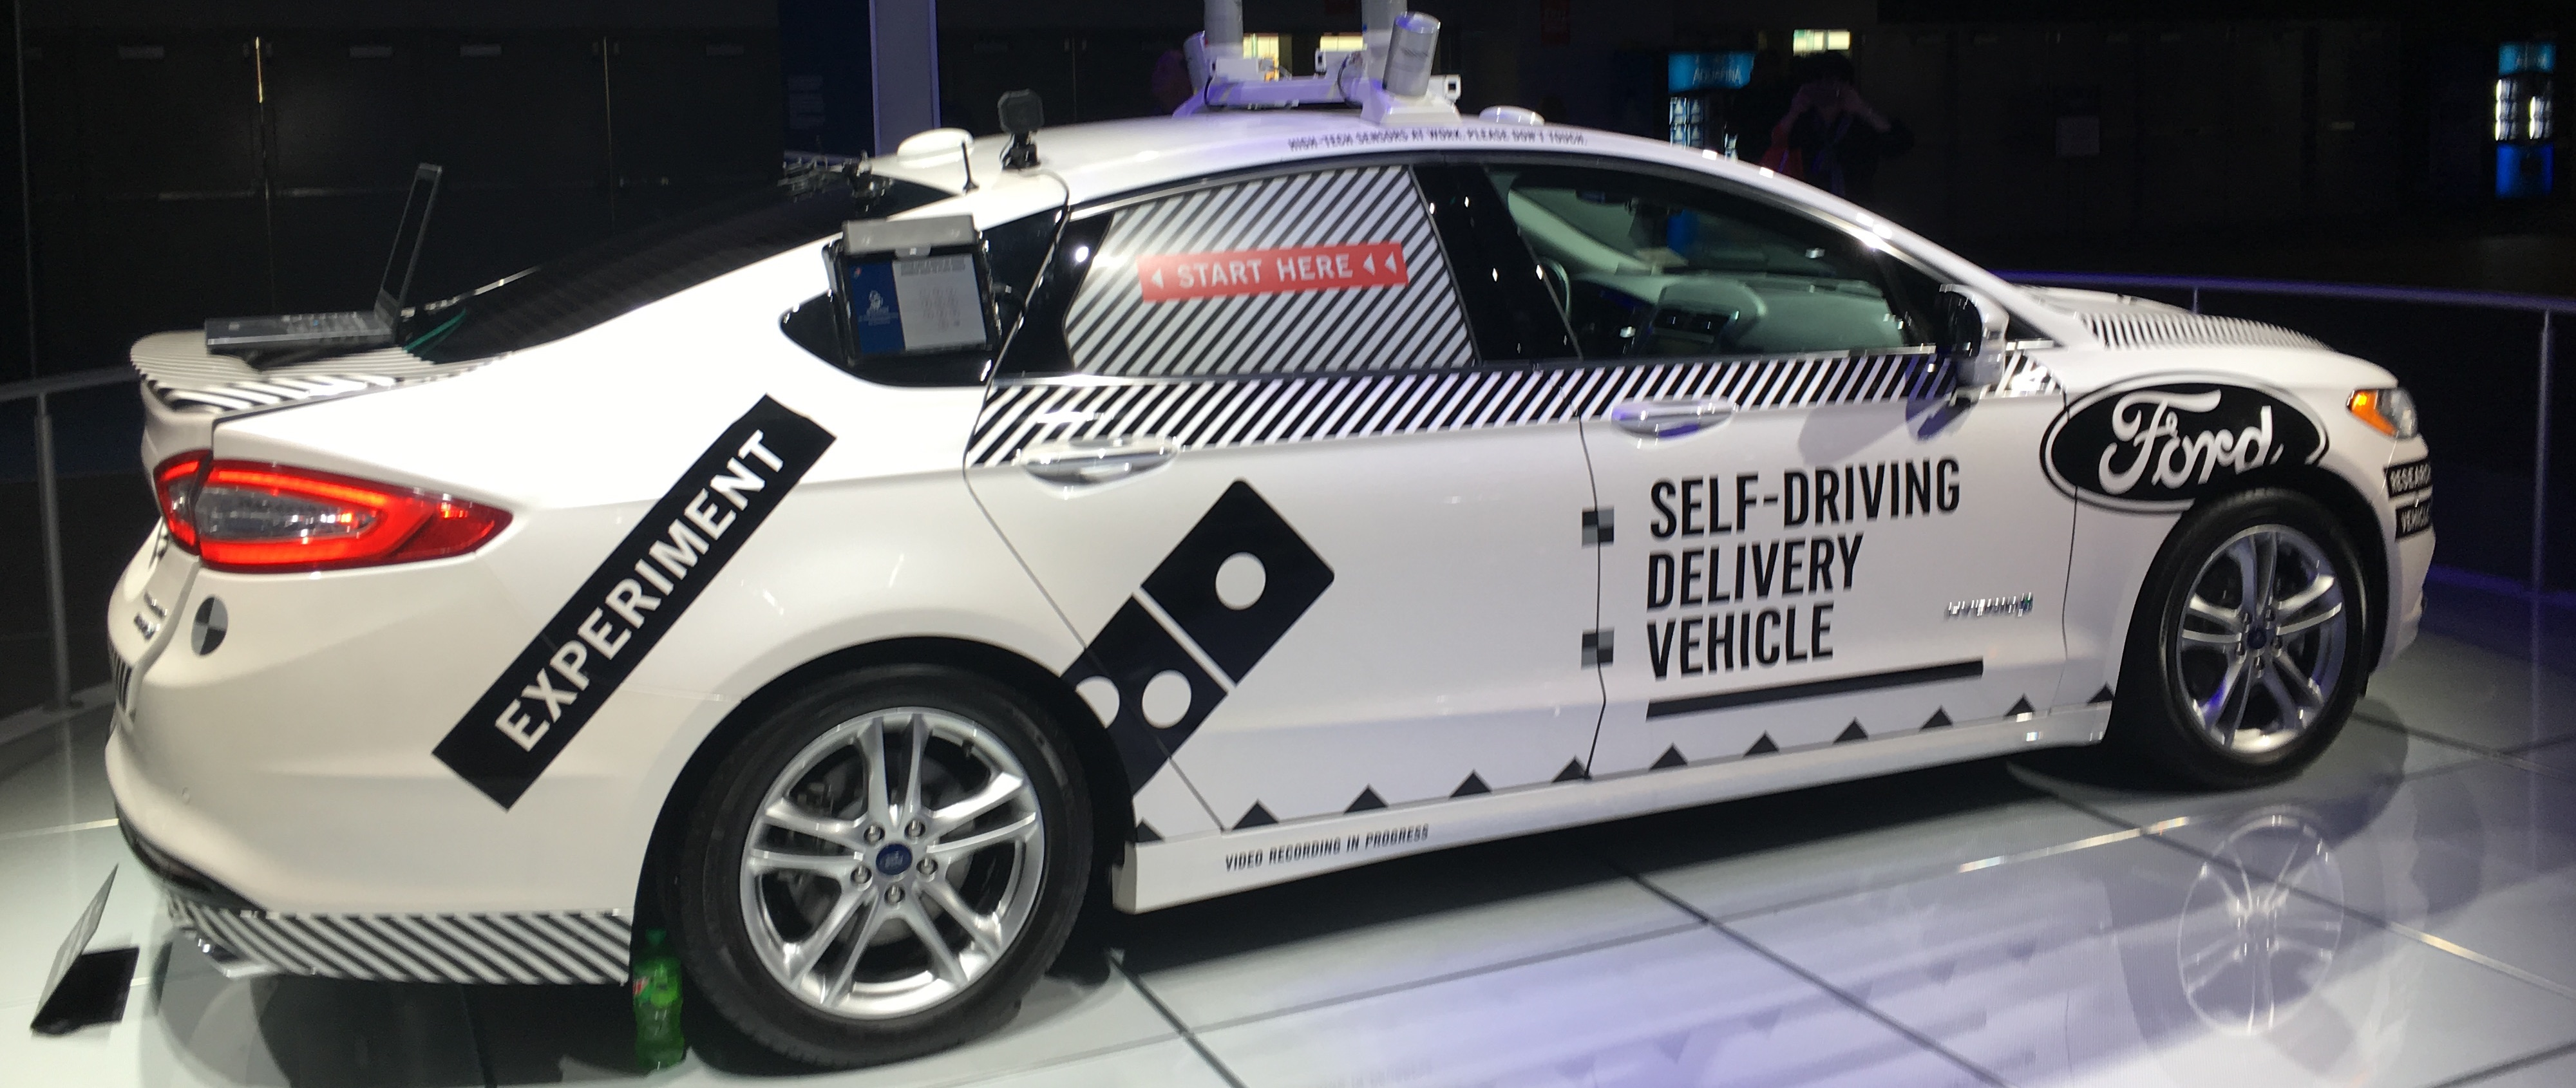 Picture of Ford Motor Company's Self-Driving Prototype